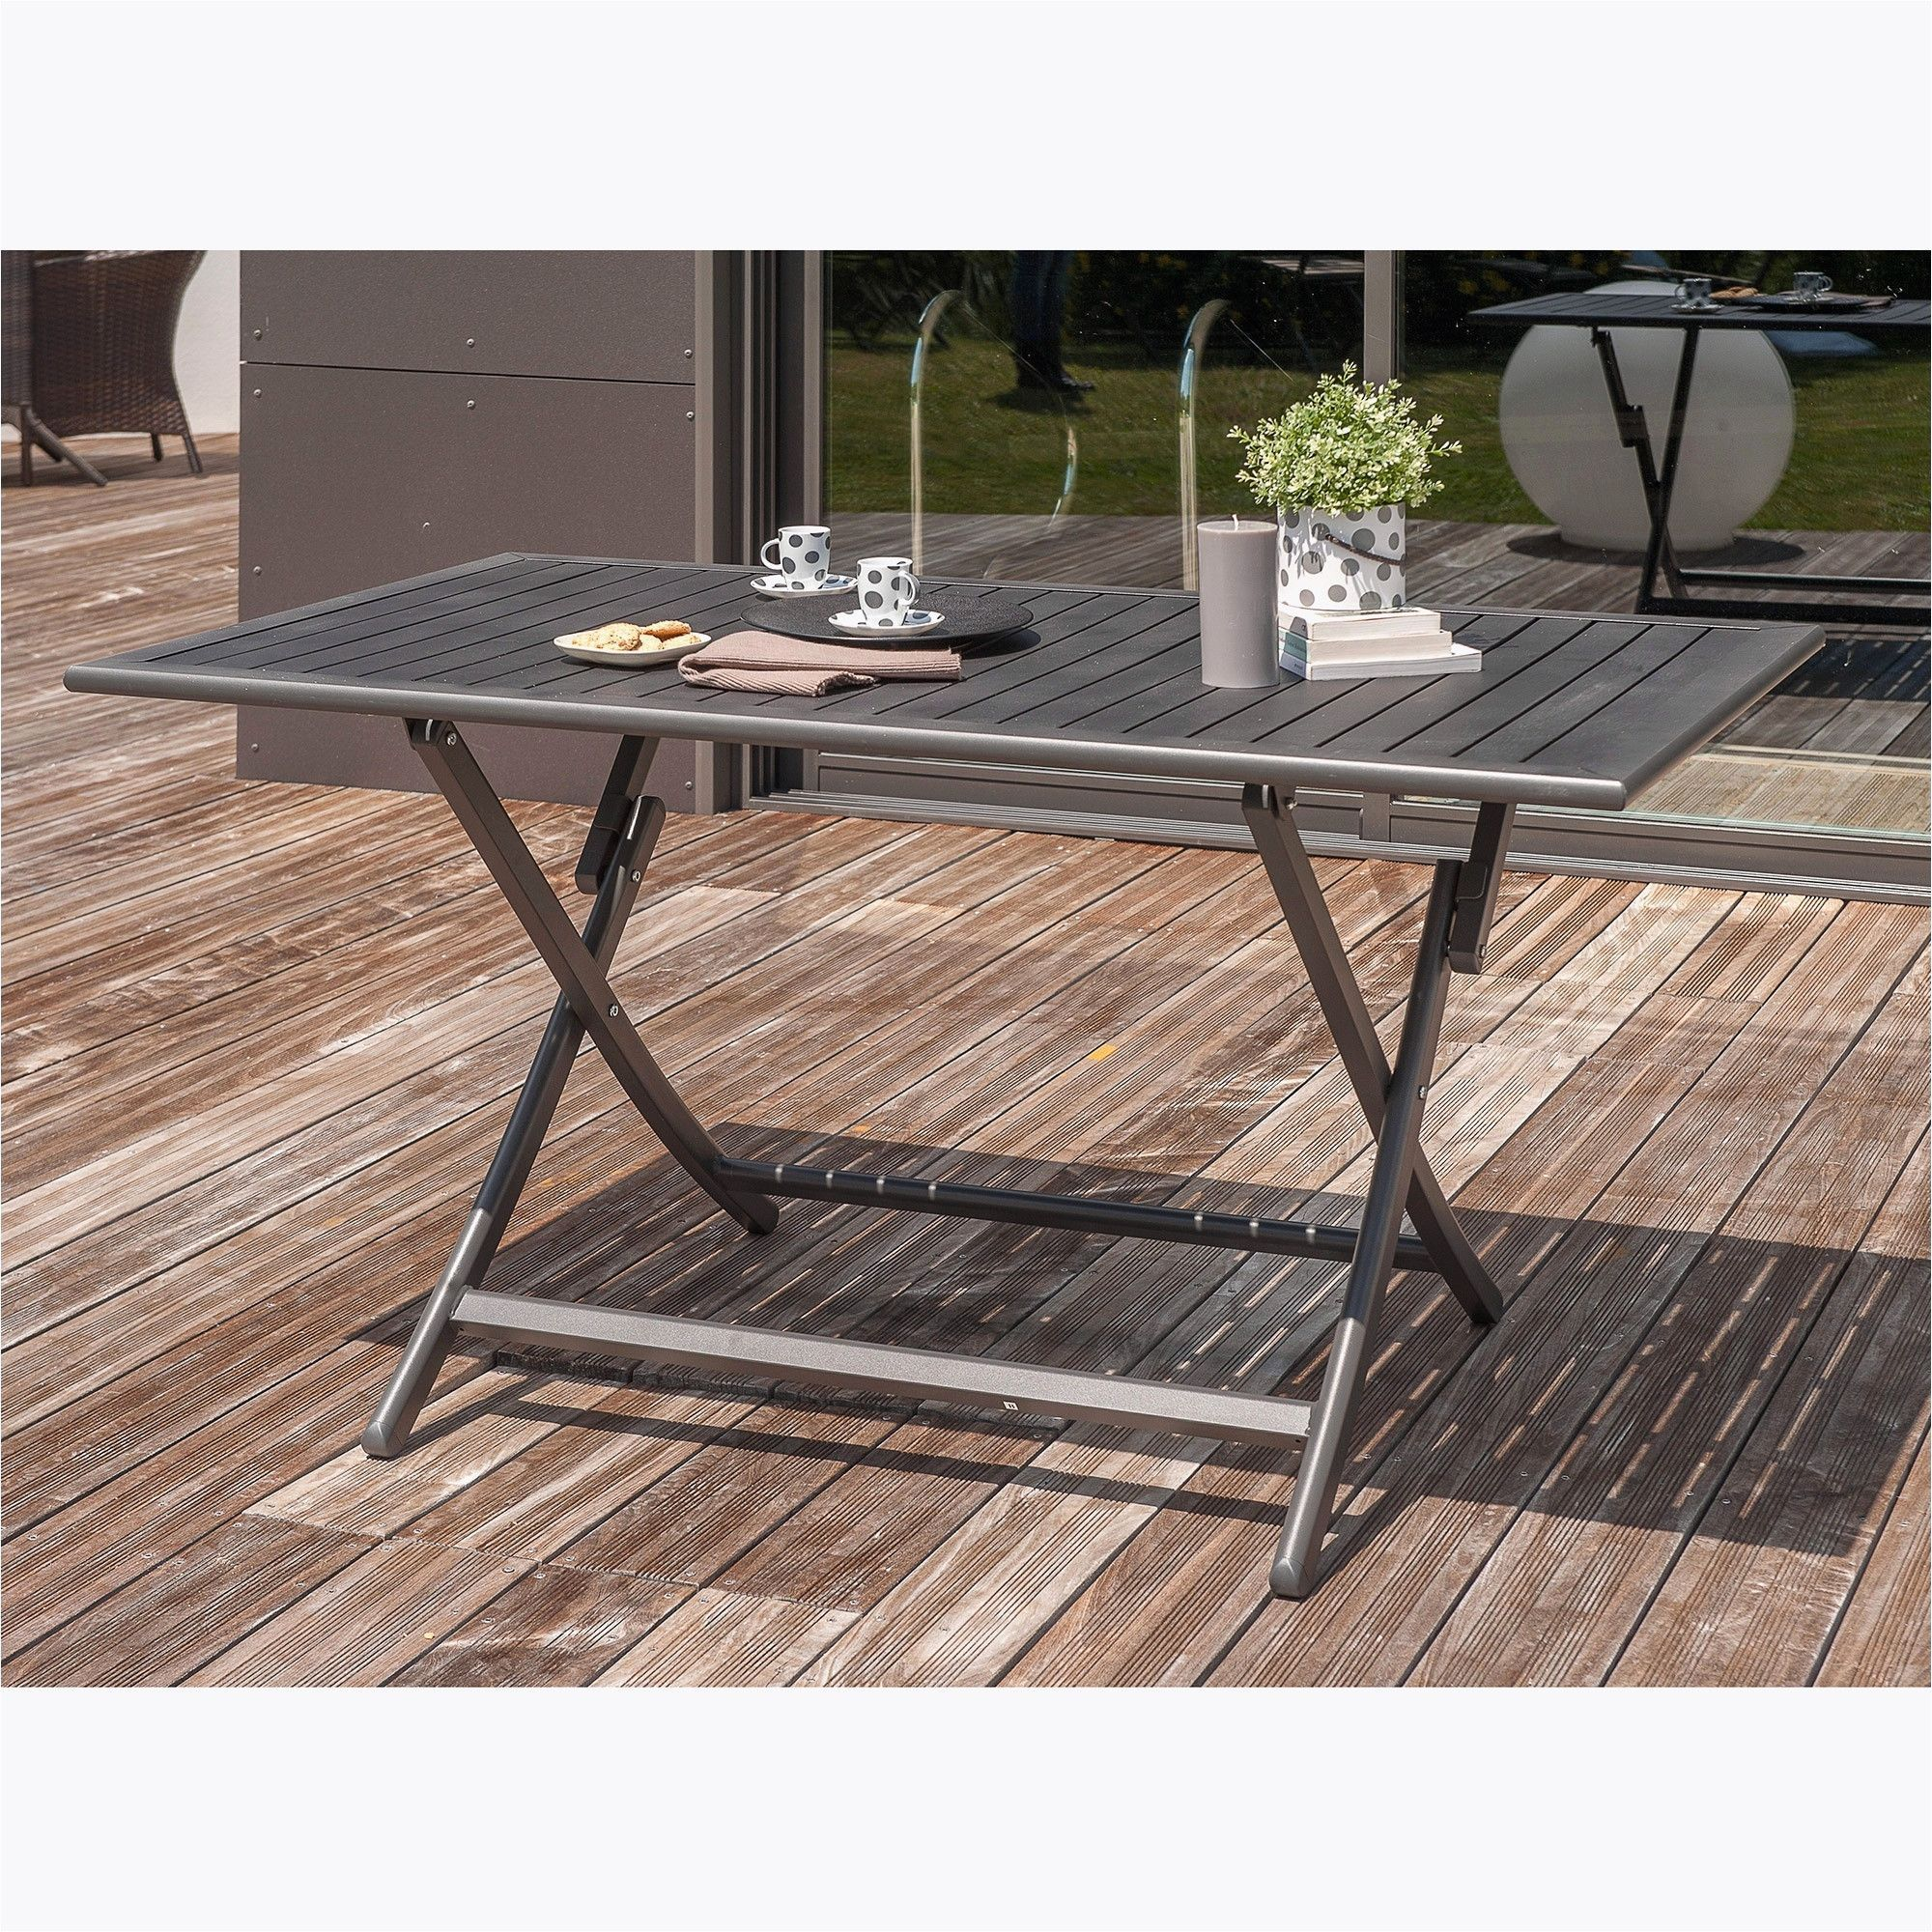 Salon Resine Tresse Unique Table Pliante Leclerc Beau S Leclerc Table De Jardin Of 40 Beau Salon Resine Tresse